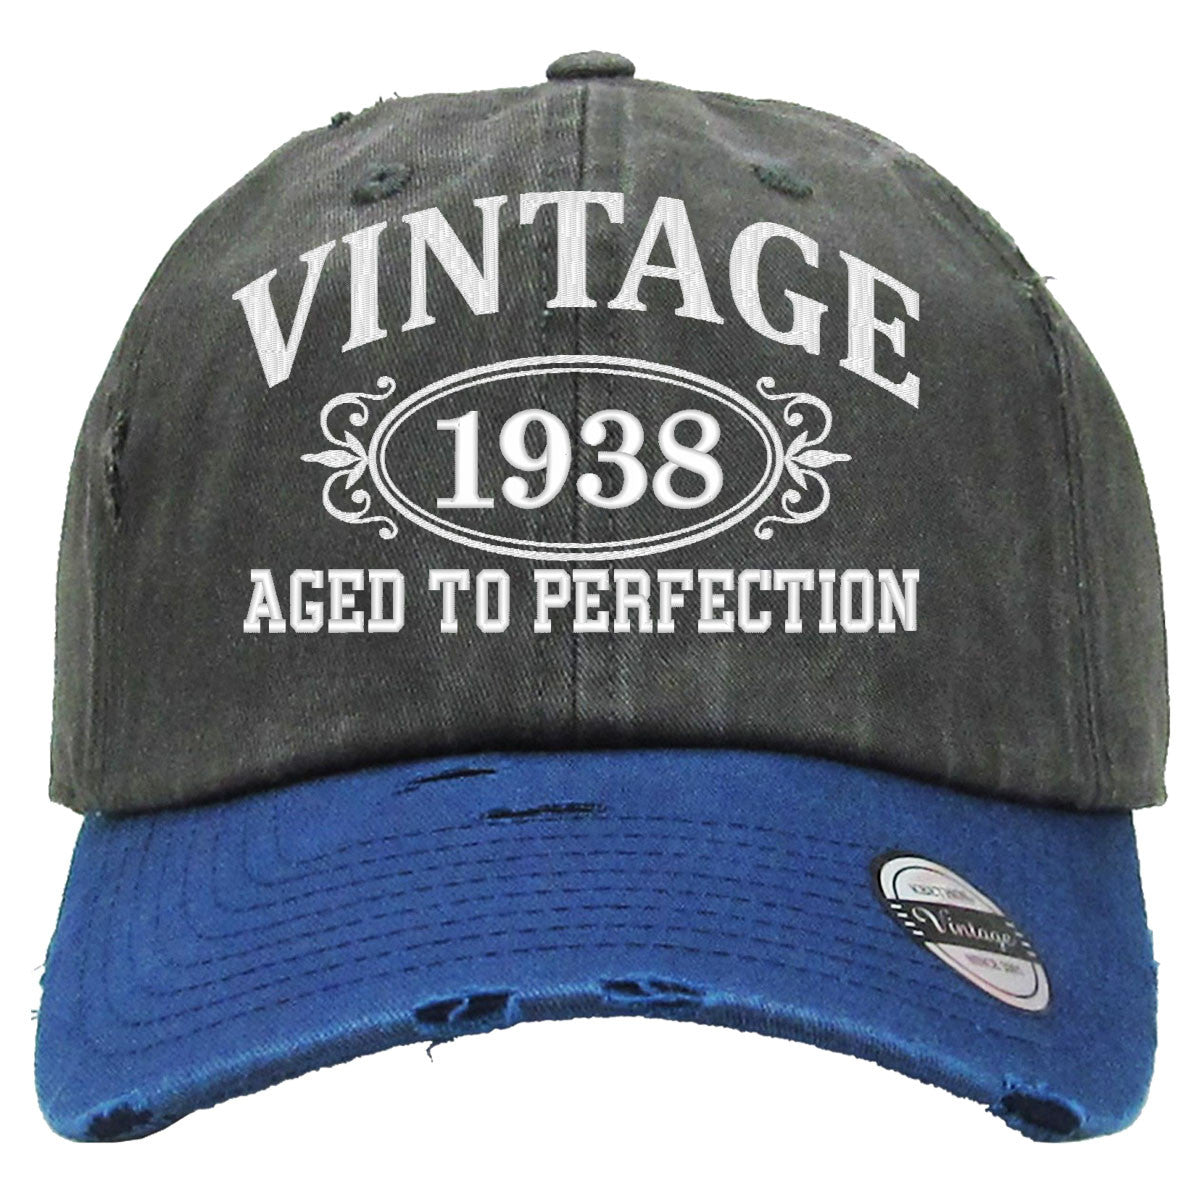 aged to perfection 1938 embroidered distressed baseball hat teeeshop